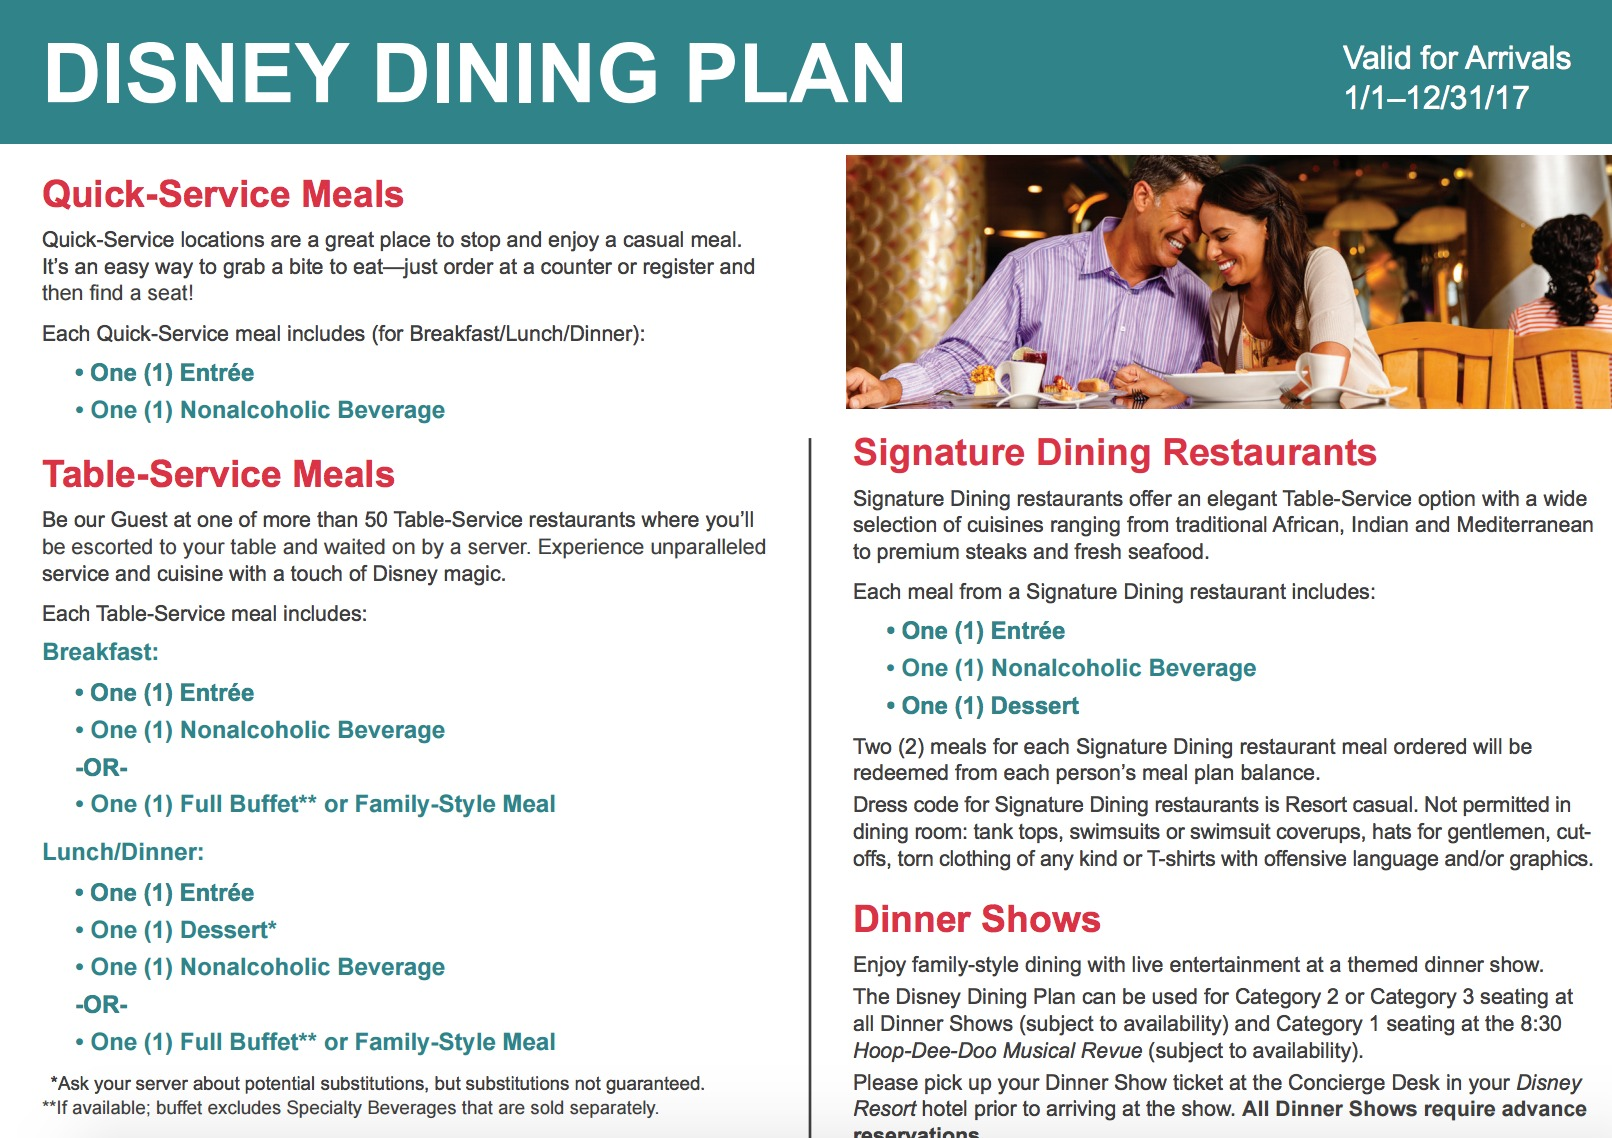 2017 Quick Service Dining Plan